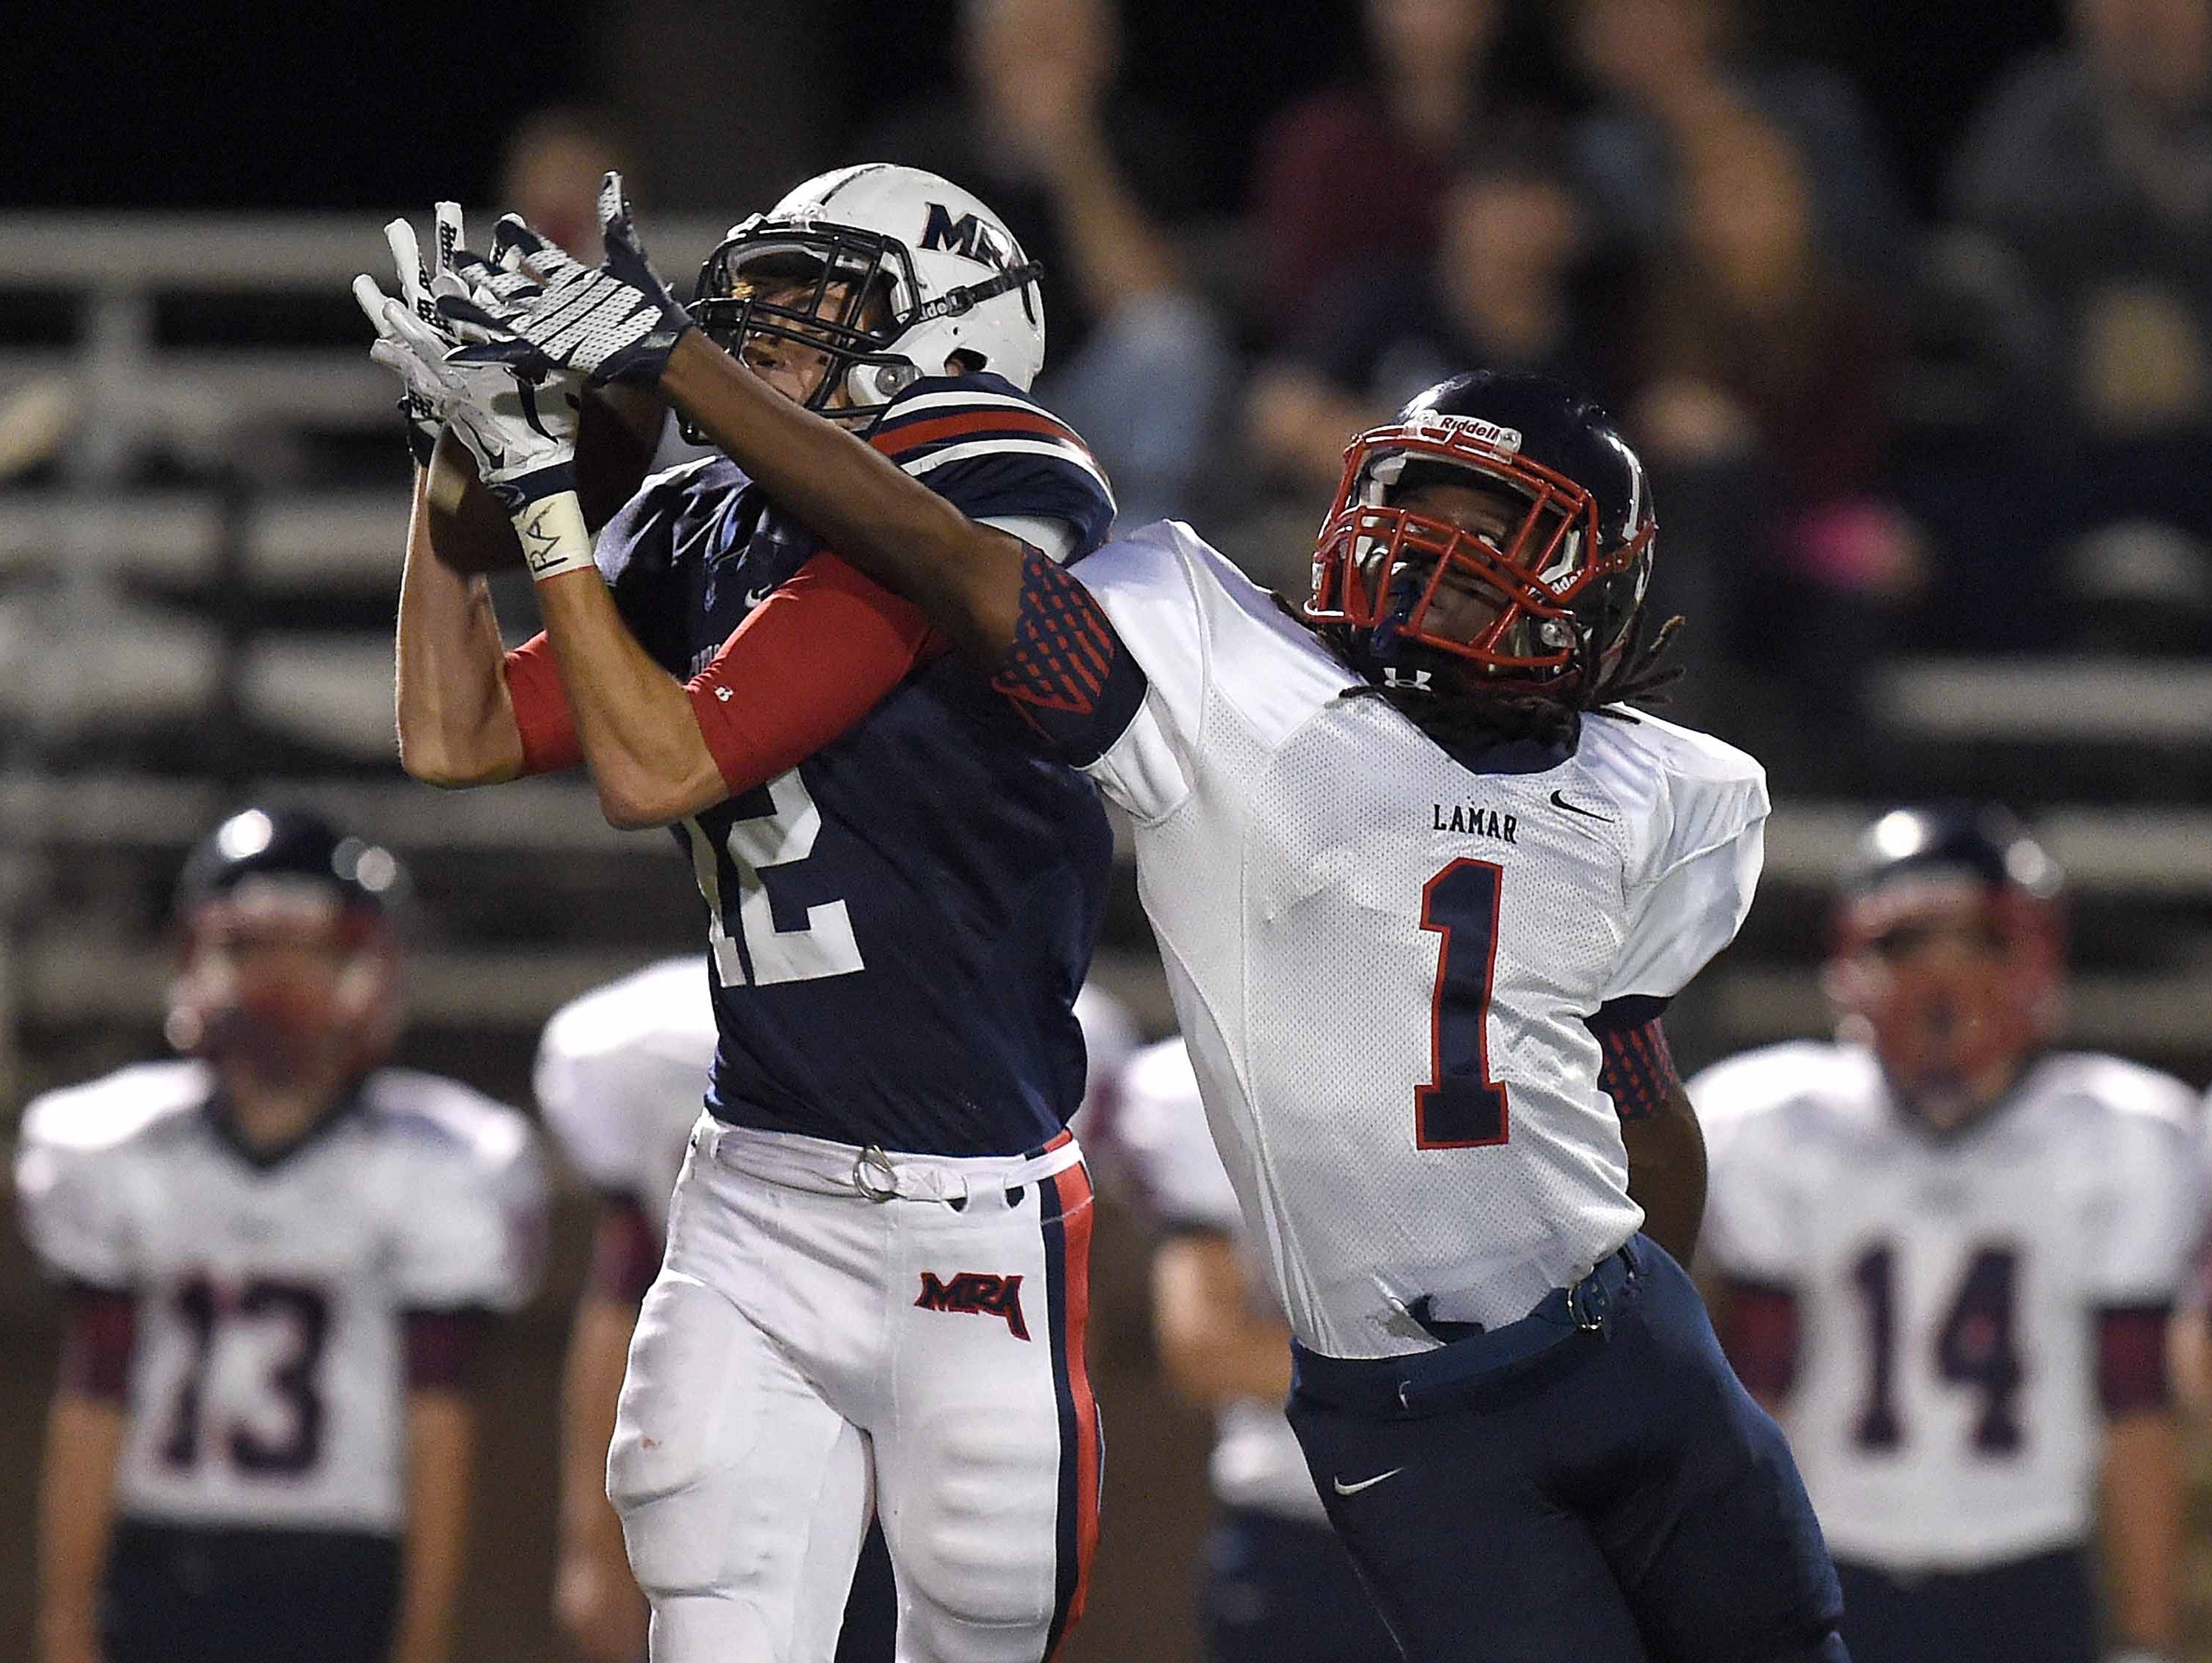 MRA's Kory Stephens (12) makes a catch against Lamar's J.T. McClelland (1) on Friday, October 30, 2015, at Madison-Ridgeland Academy in Madison, Miss.